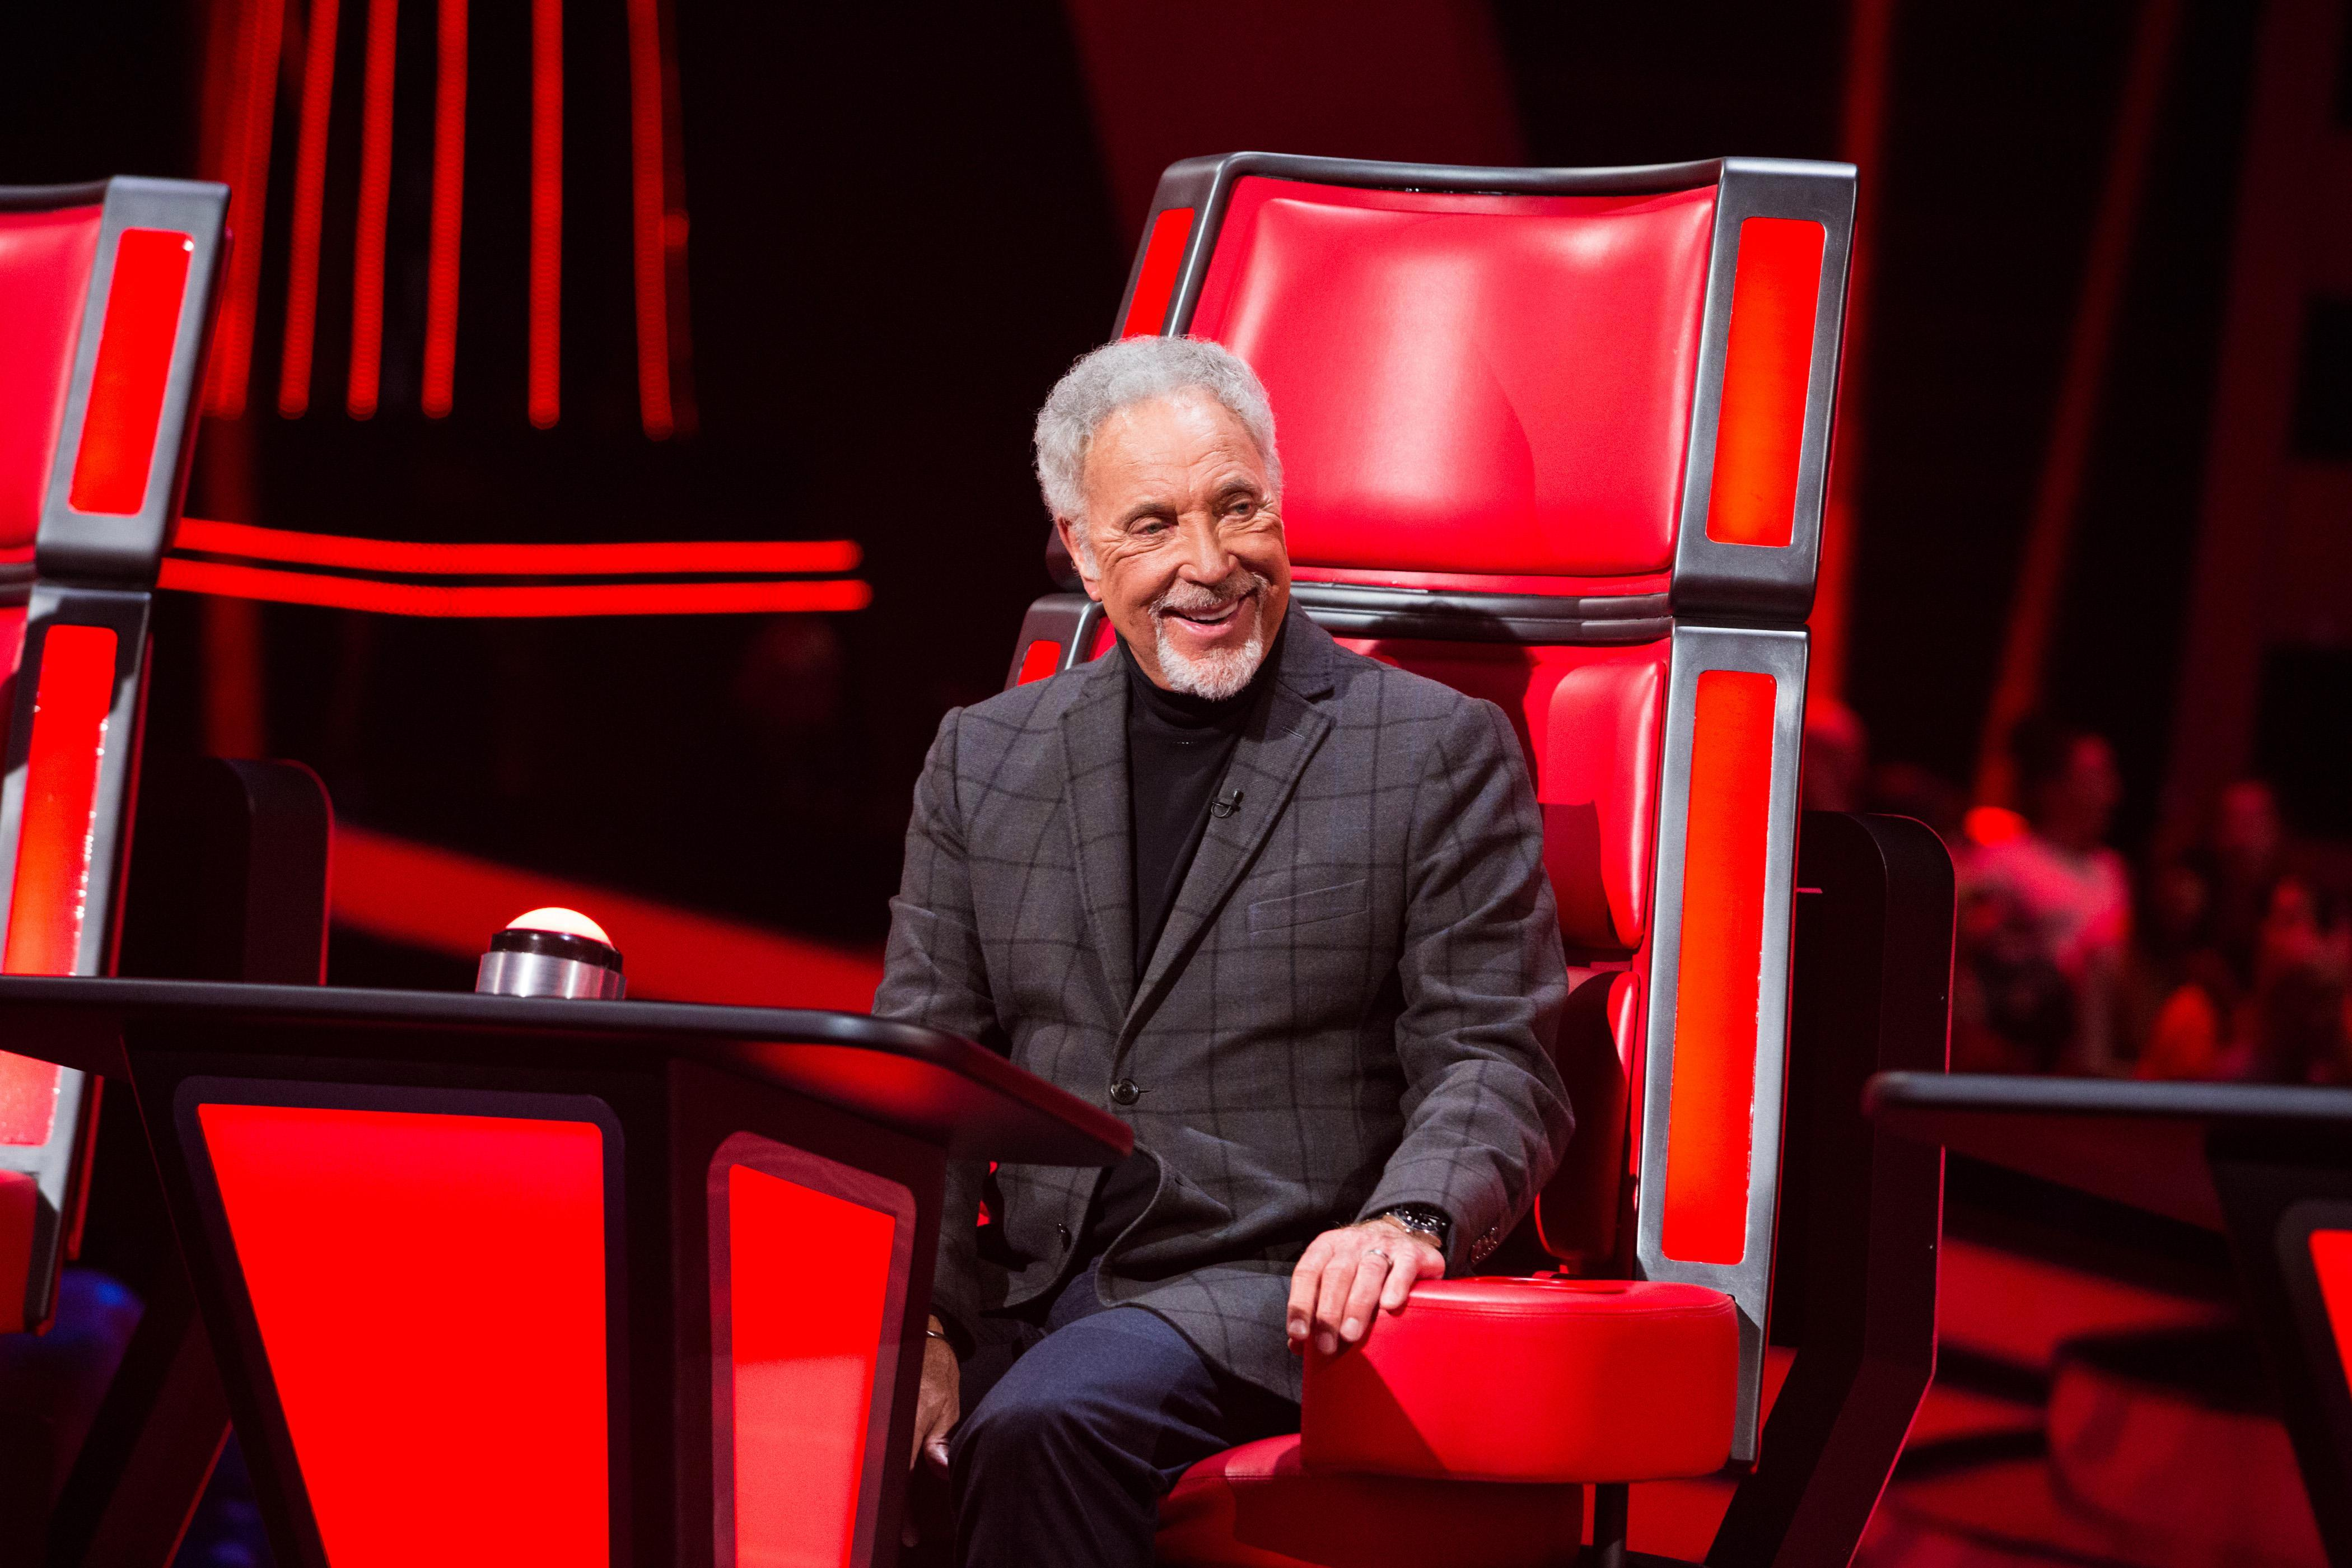 The Voice 2018 judge Tom Jones – 5 fast facts about the Welsh icon